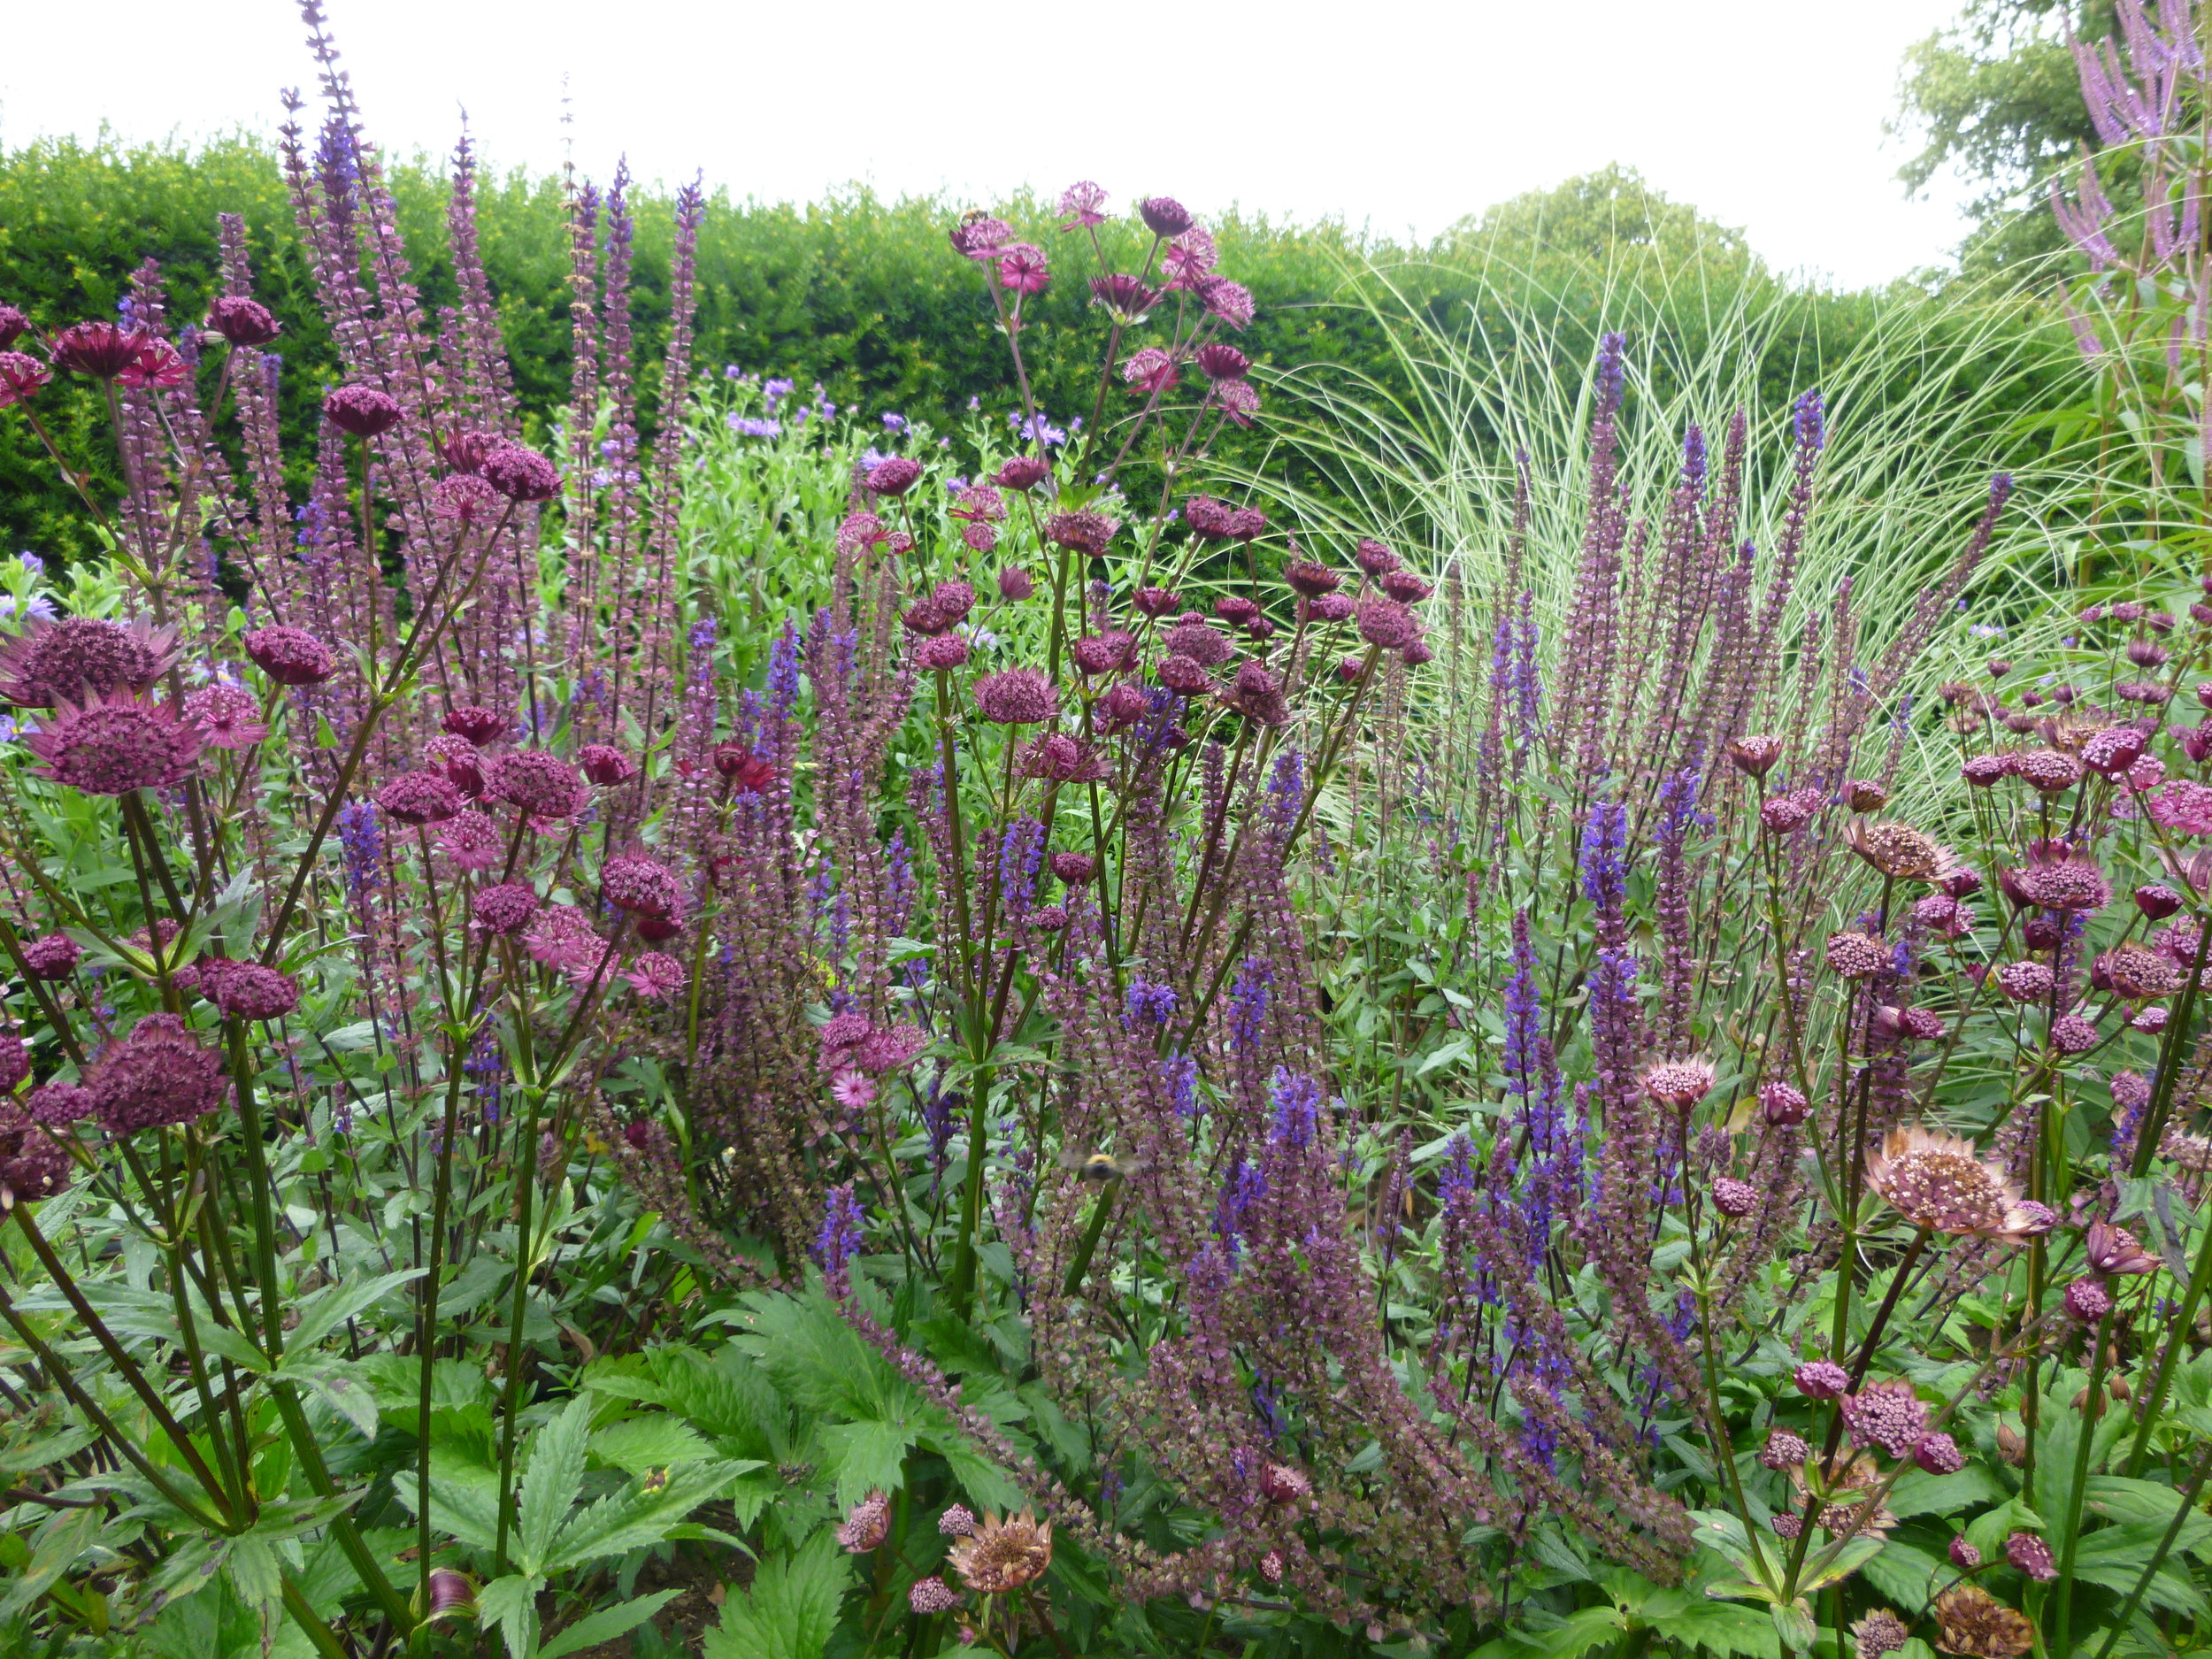 Palette of purple, pink and white: Spires of  Salvia Carradonna  with  Astrantia Ruby Wedding  and  Miscanthus Morning Light  in the background.